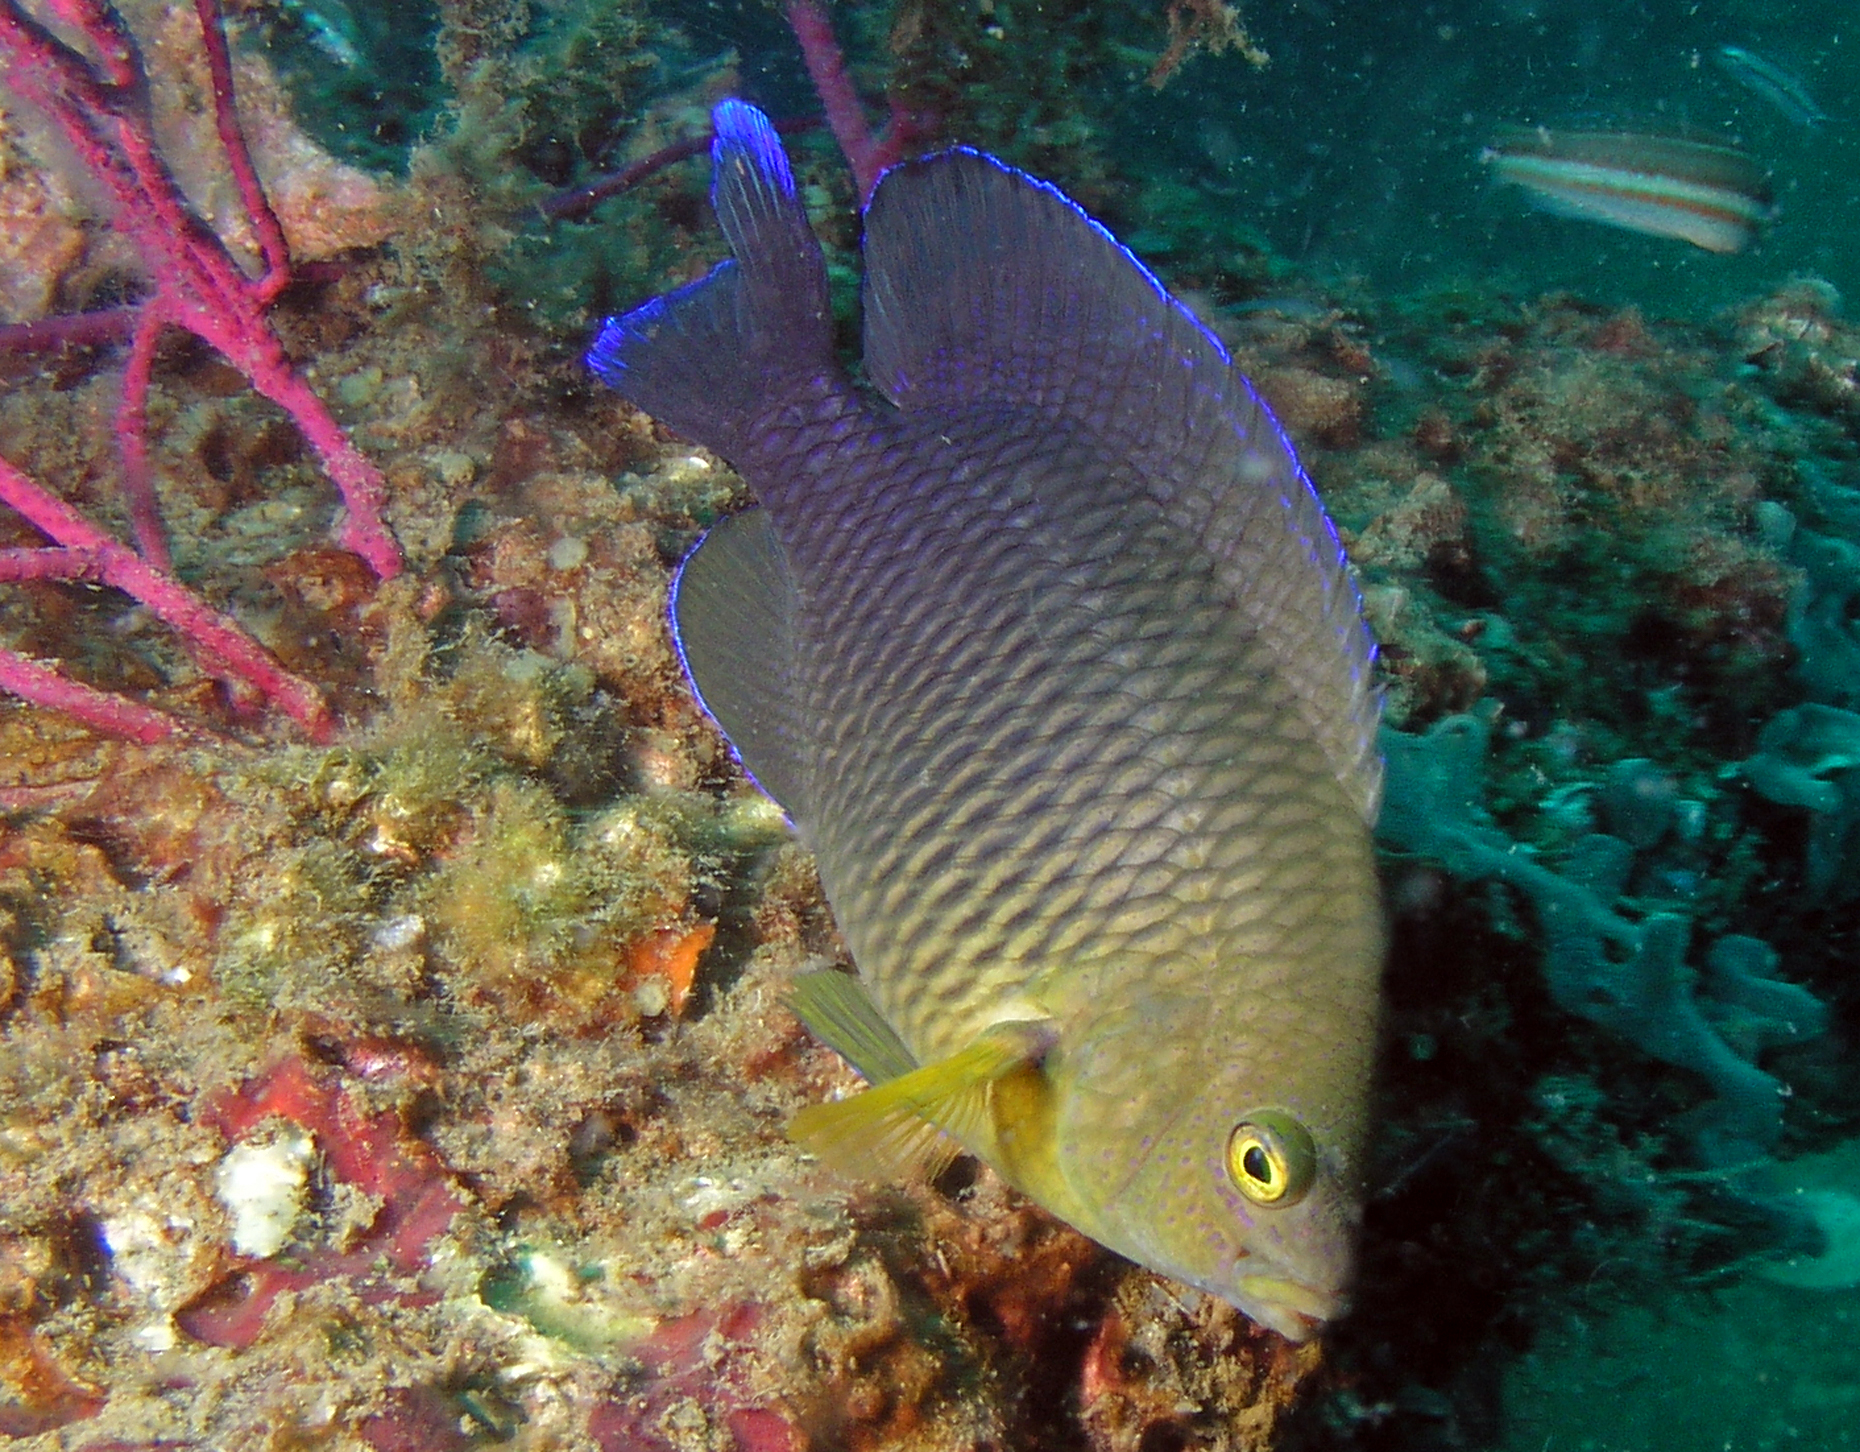 Damselfish with flourescent blue margins  Reef